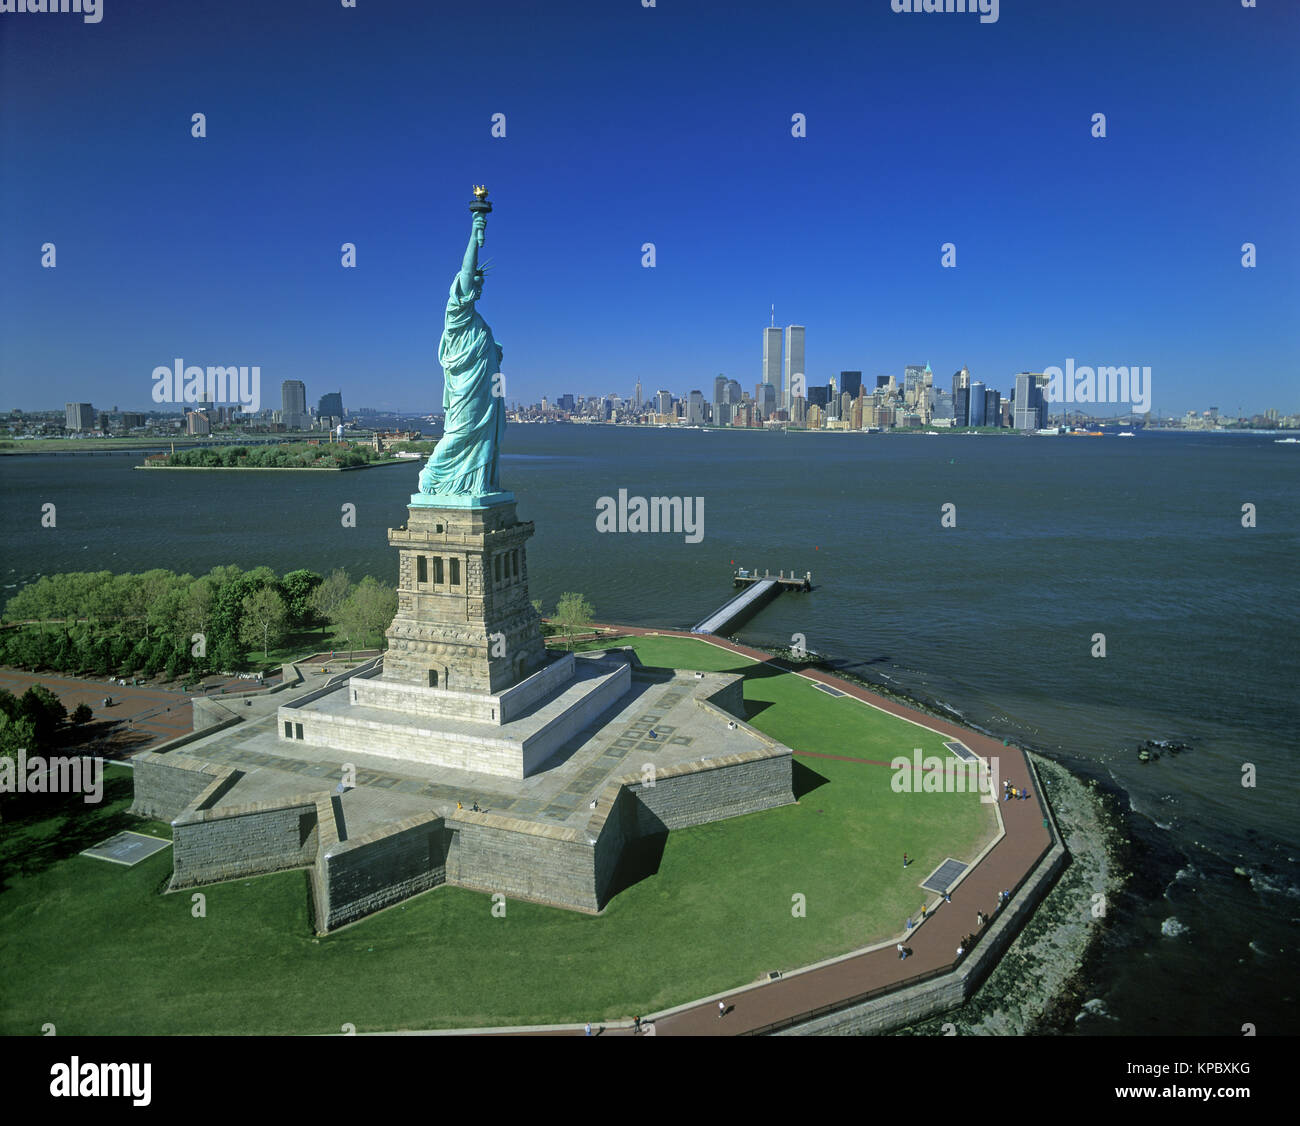 an analysis of liberty enlightening the world in 1886 Title inauguration of the statue of liberty enlightening the world : by the president of the united states, on bedlow's island, new york, thursday, october 28, 1886.